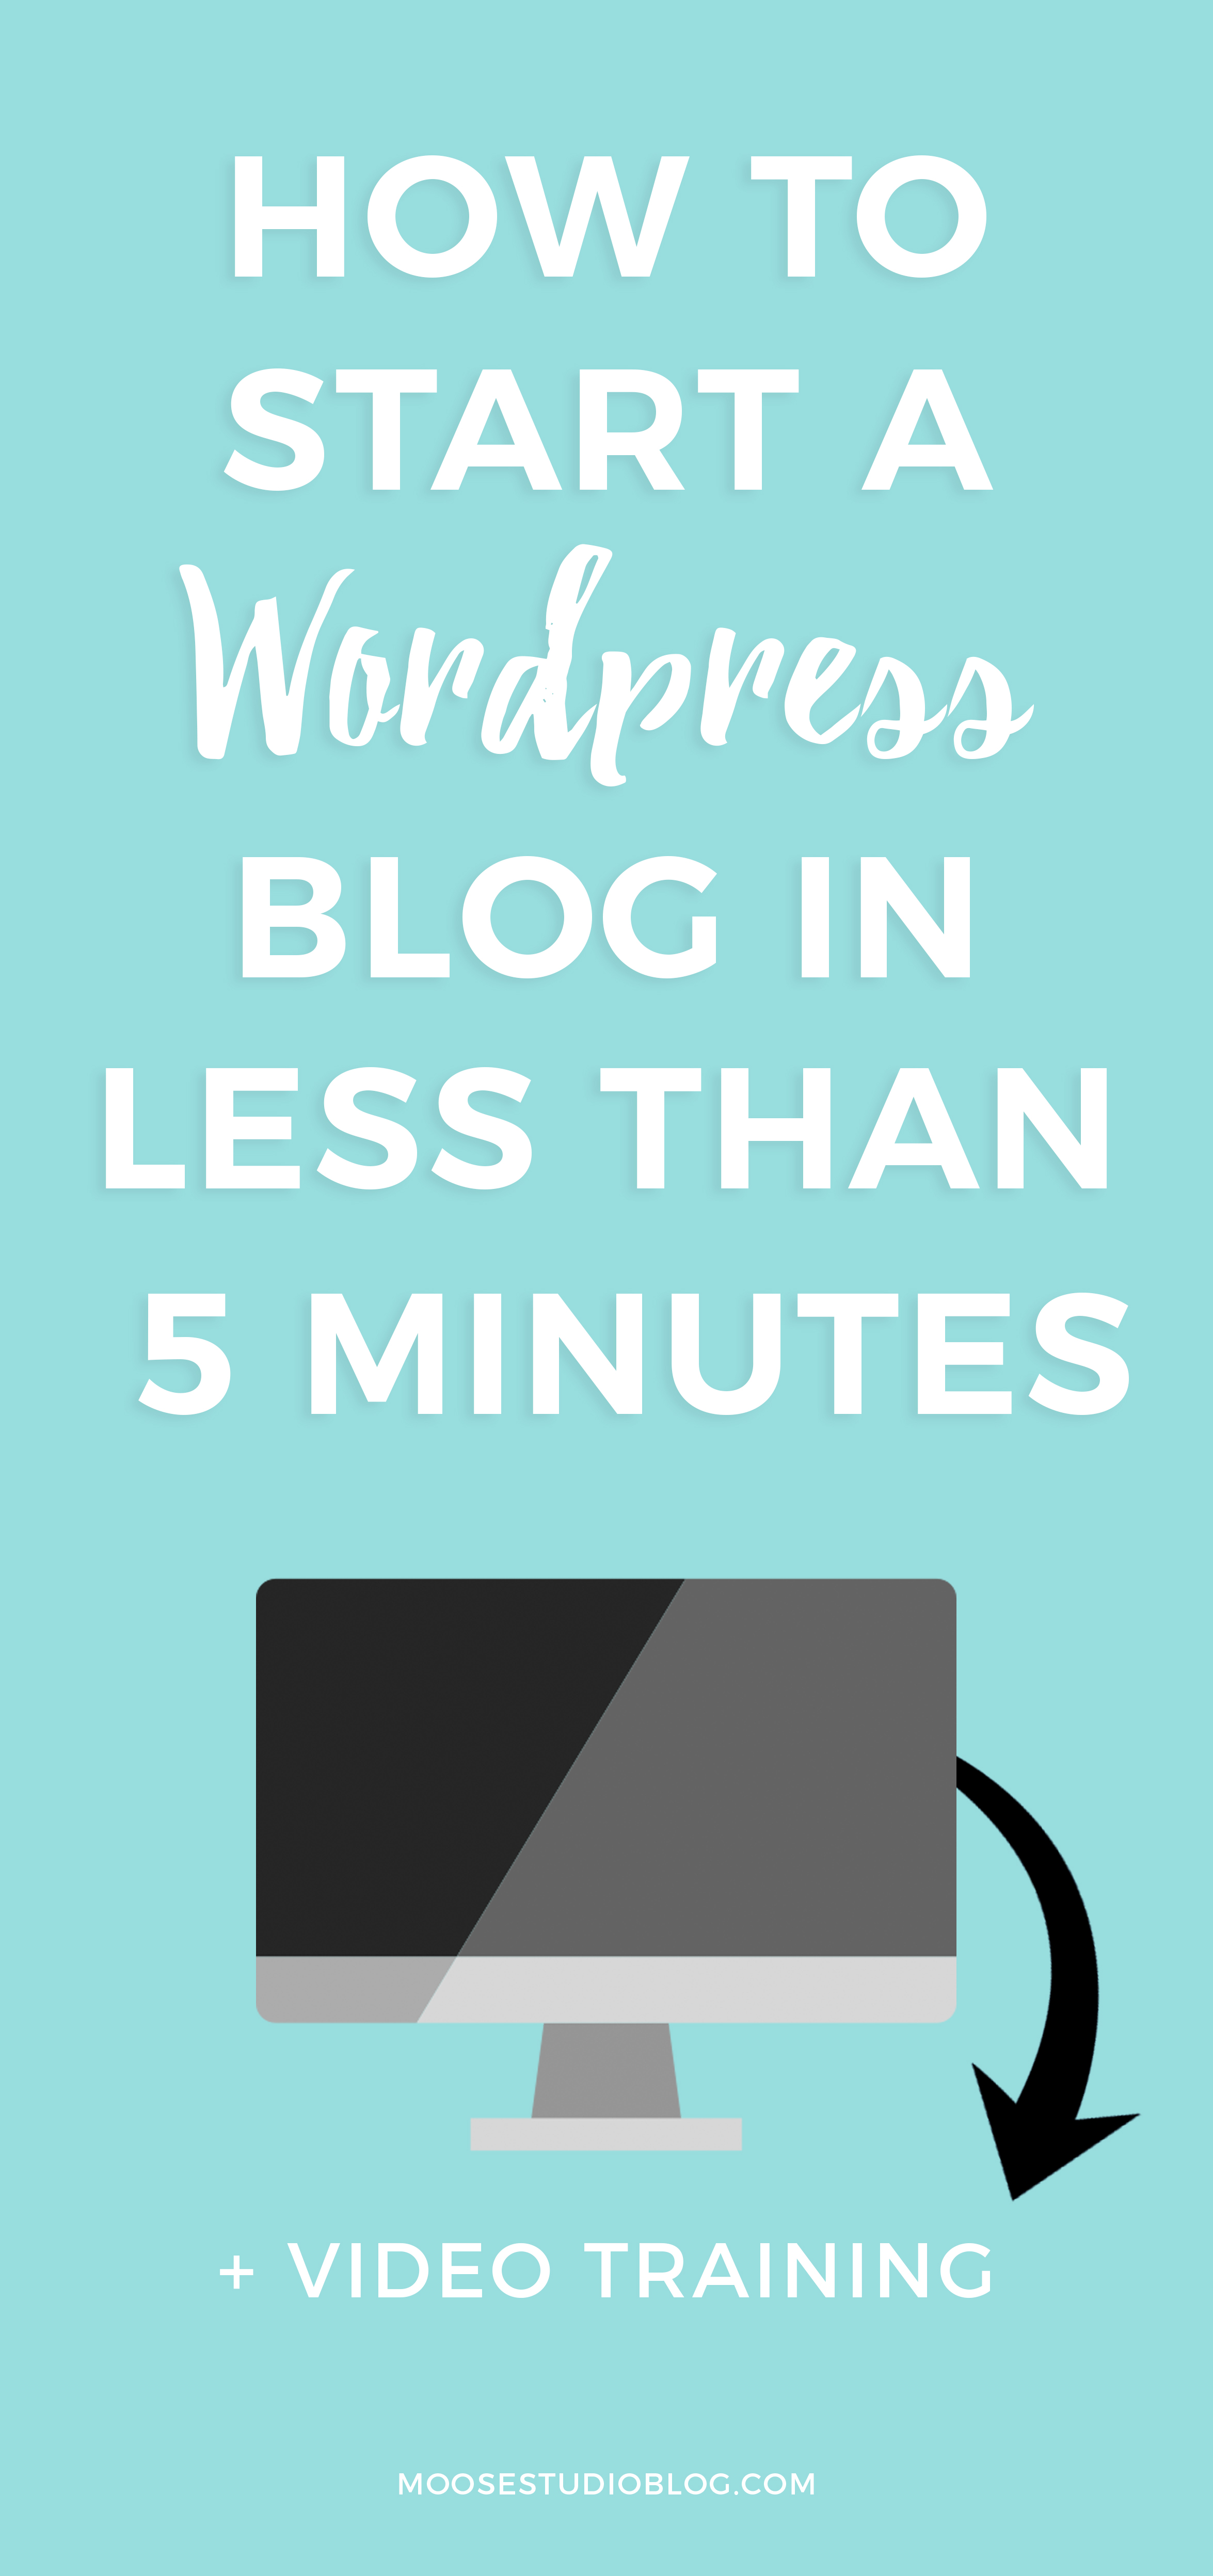 How To Start A WordPress Blog In Less Than 5 Minutes